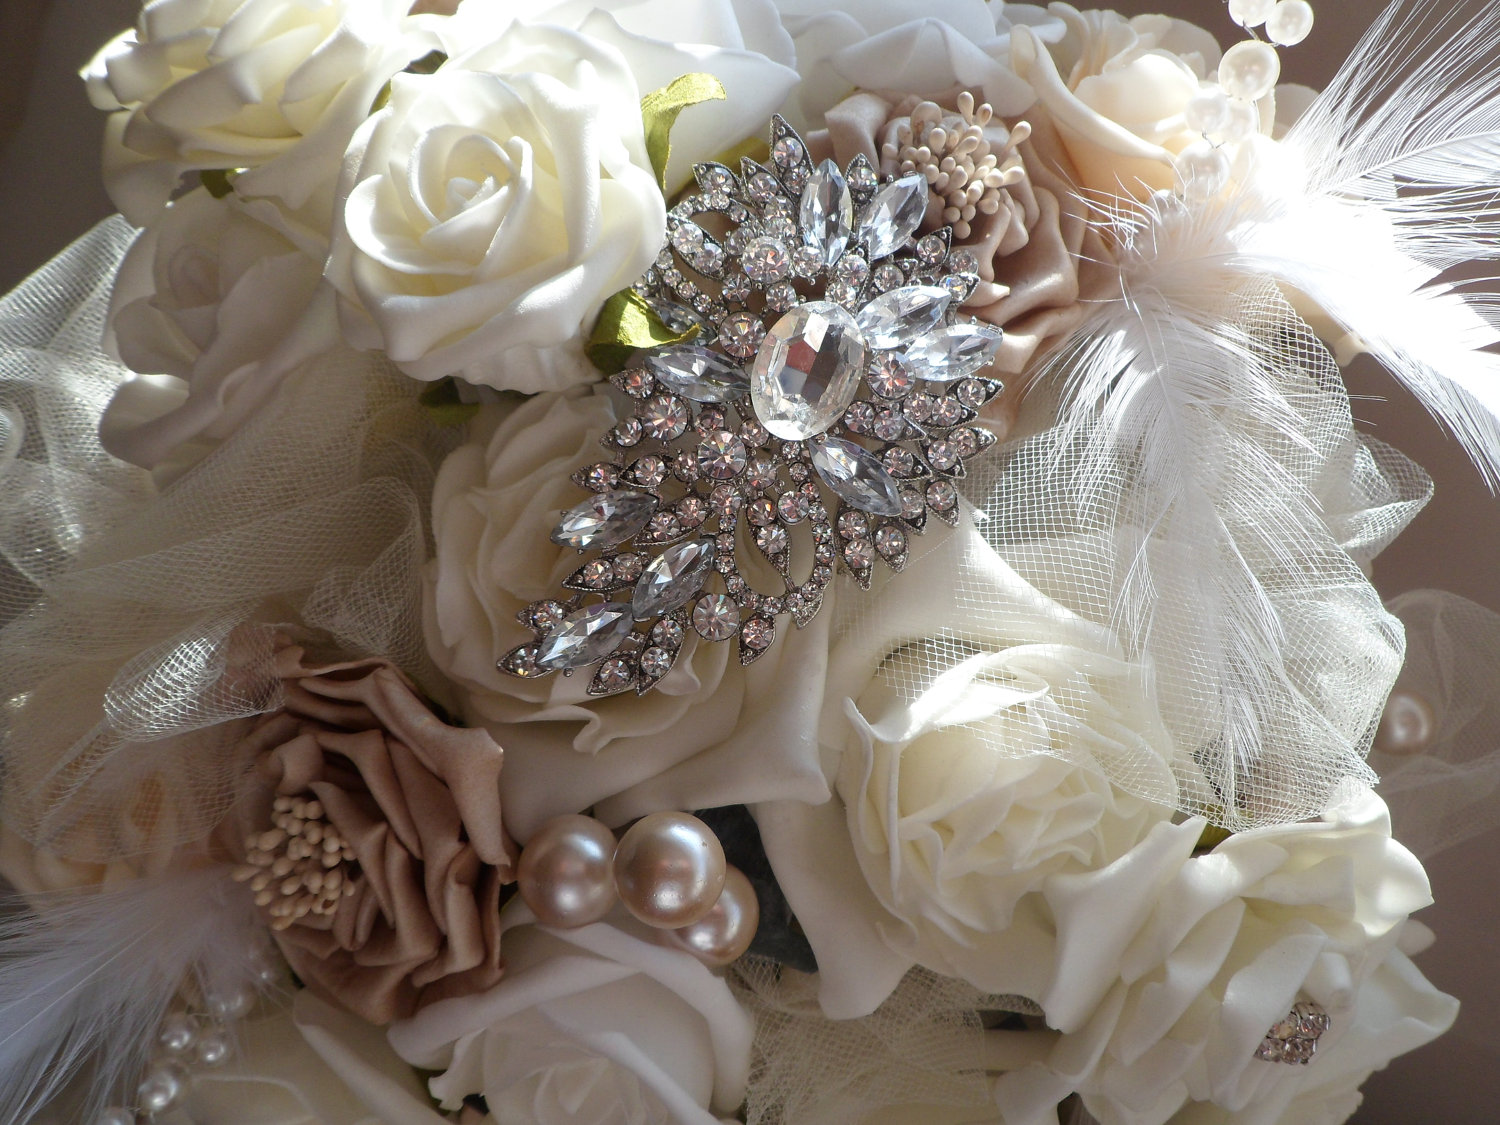 Vintage-wedding-ideas-downton-abbey-edwardian-wedding-style-bridal-bouquet.original